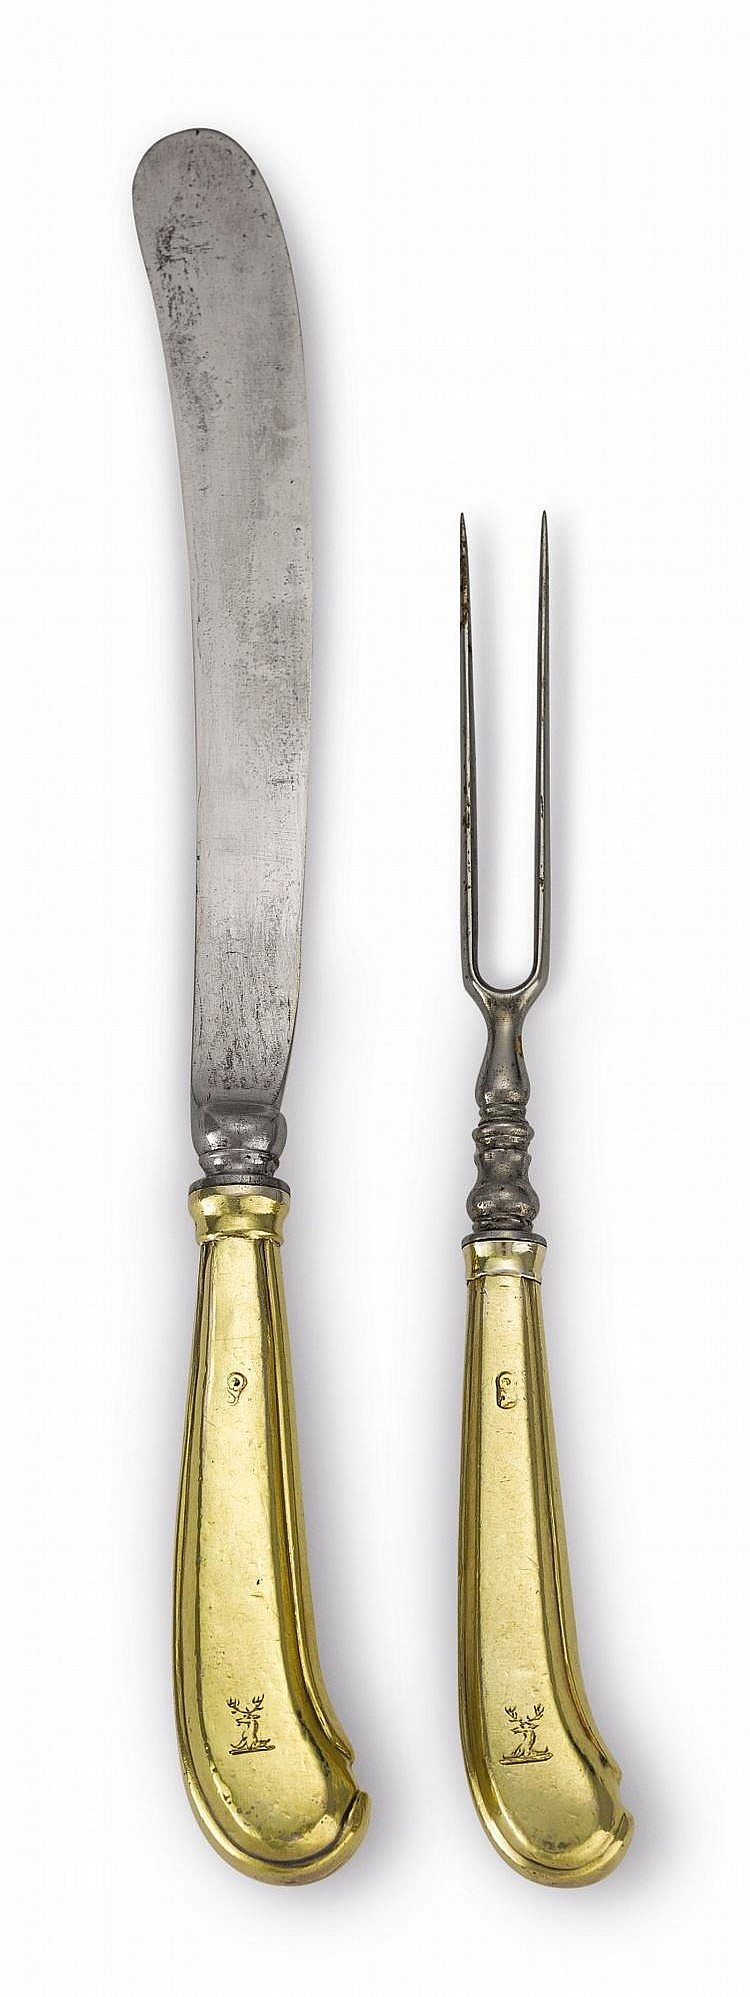 SIX QUEEN ANNE OR GEORGE I SILVER-GILT CHEESE KNIVES AND SIX TWO-PRONG FORKS, MAKER'S MARK GA, CIRCA 1710 |